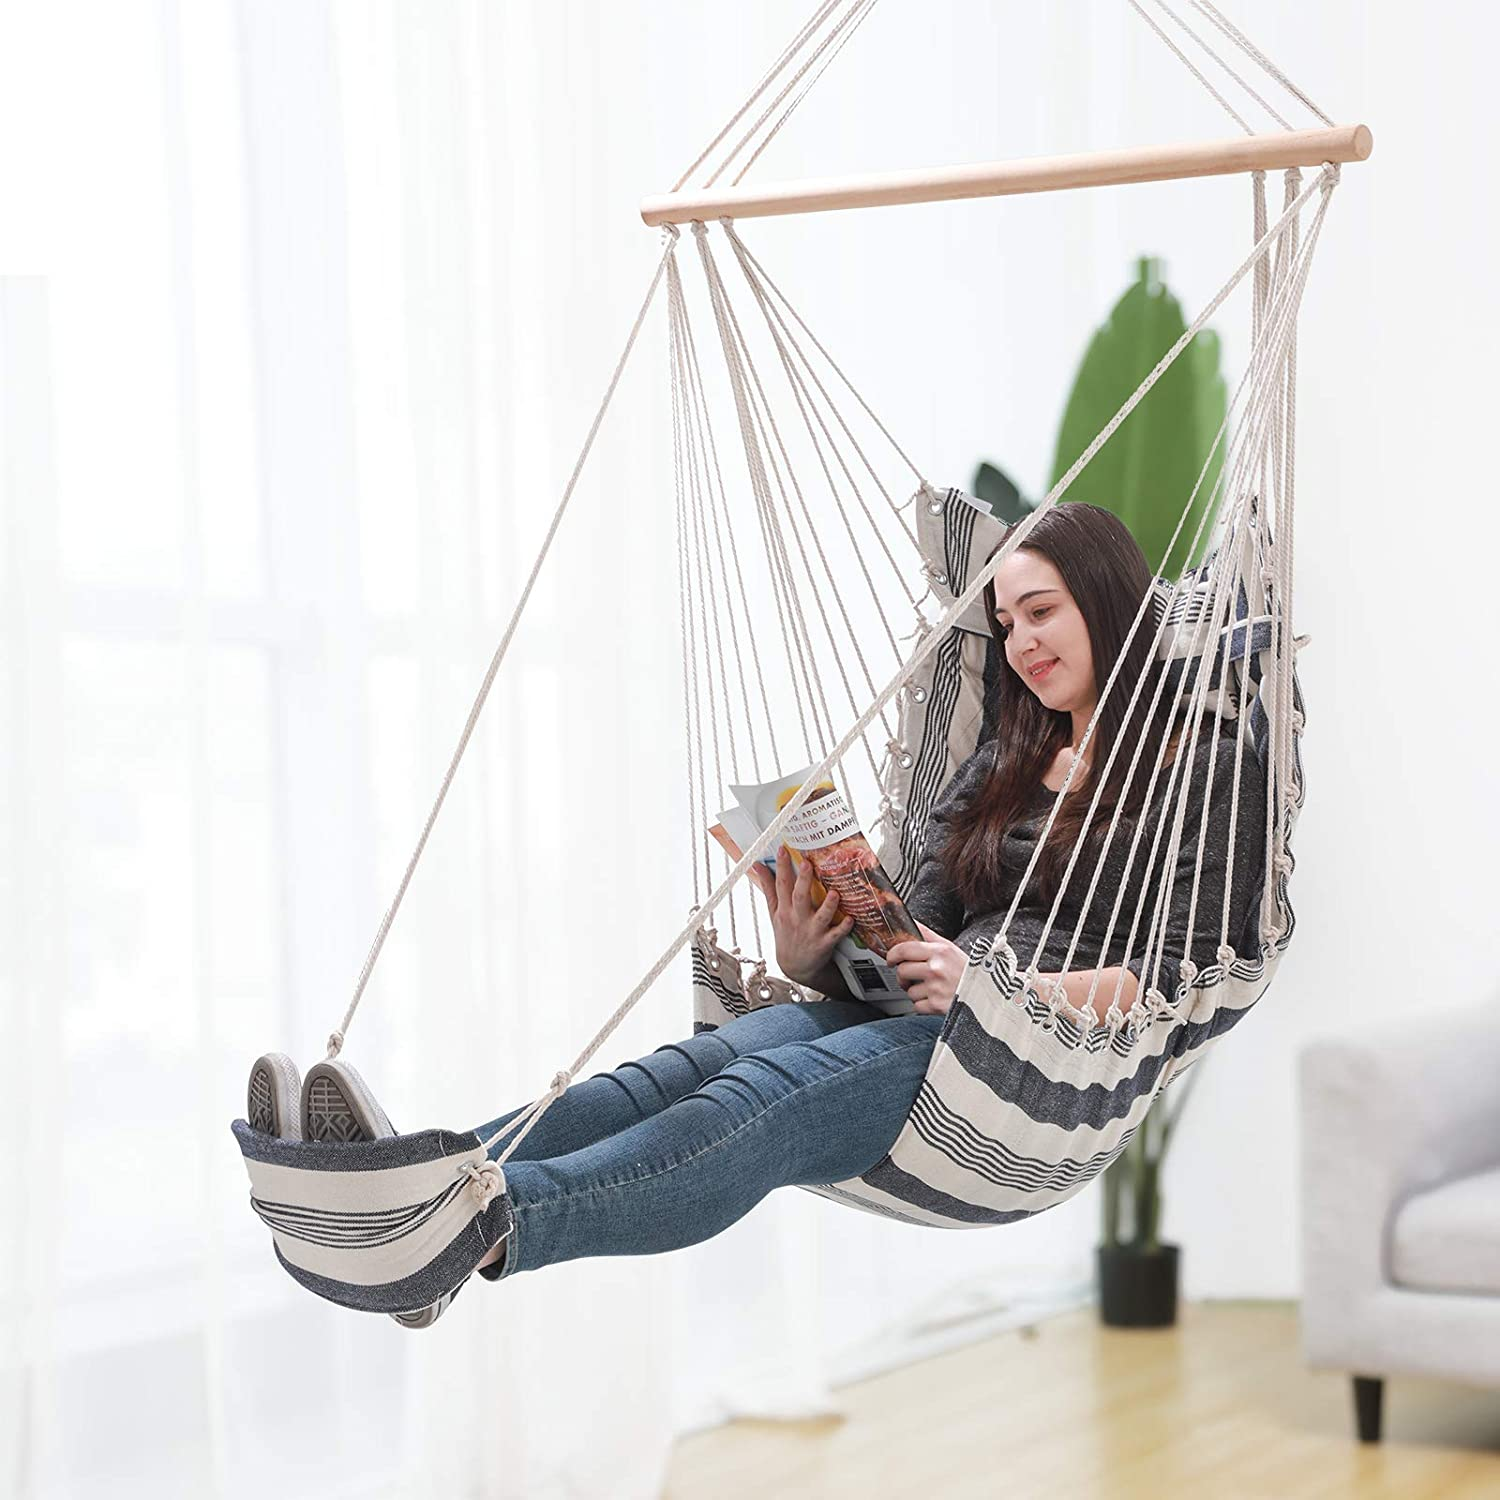 Songmics Hammock Chair Hanging Chair With Pillow And Footrest Xl Padded Swing Chair 70 X 120 Cm Load Capacity 200 Kg Indoor And Outdoor Blue And White Stripes Gdc46wq Amazon Co Uk Garden